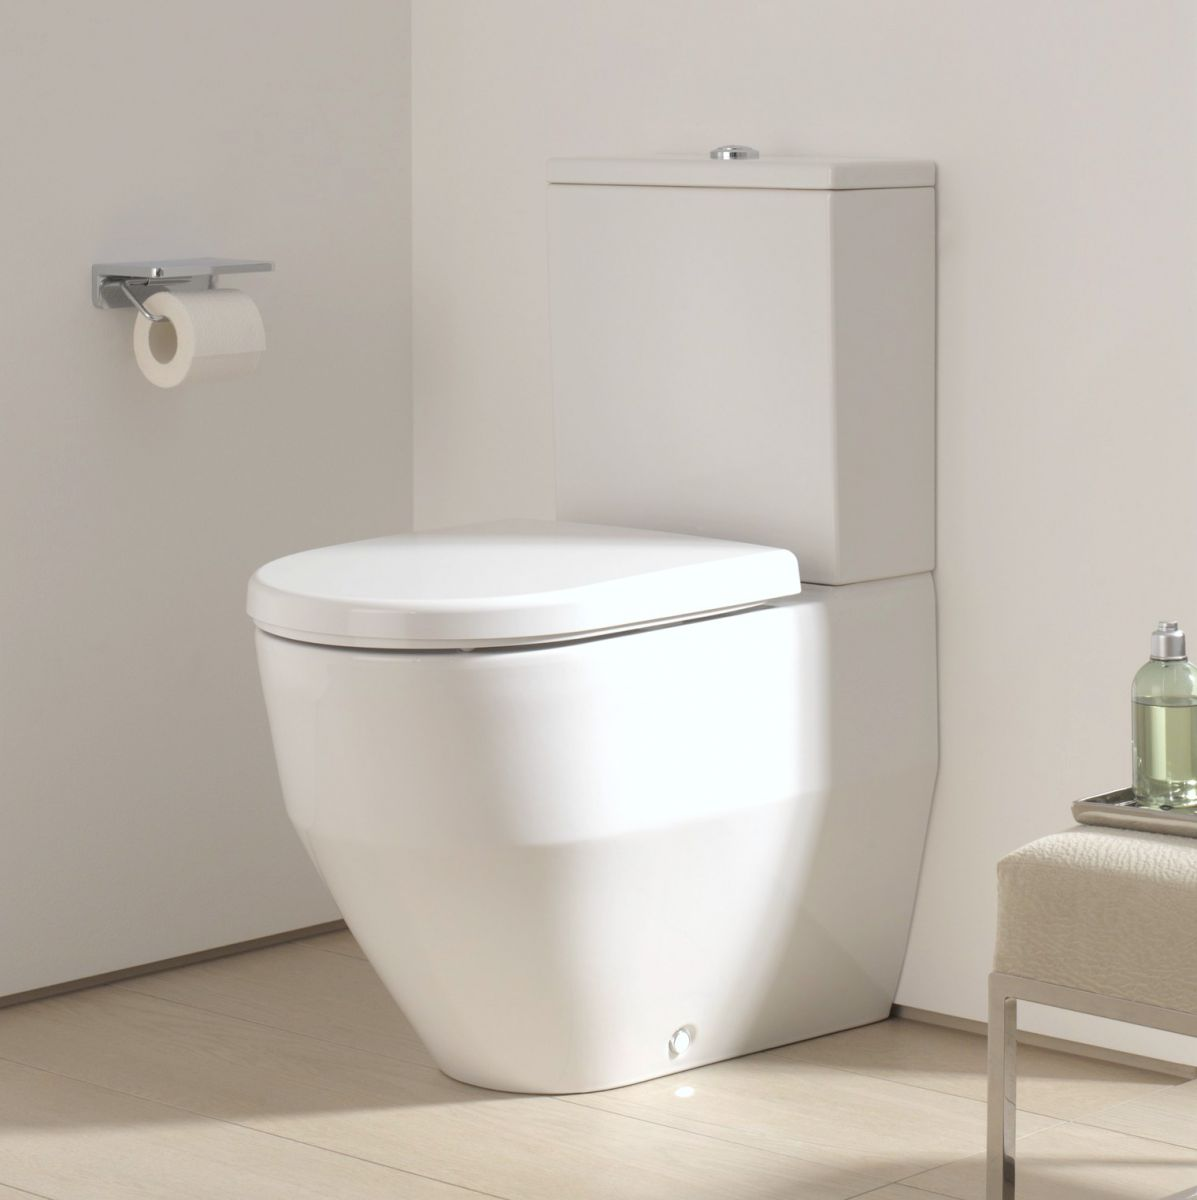 Laufen pro back to wall toilet get soap out of carpet